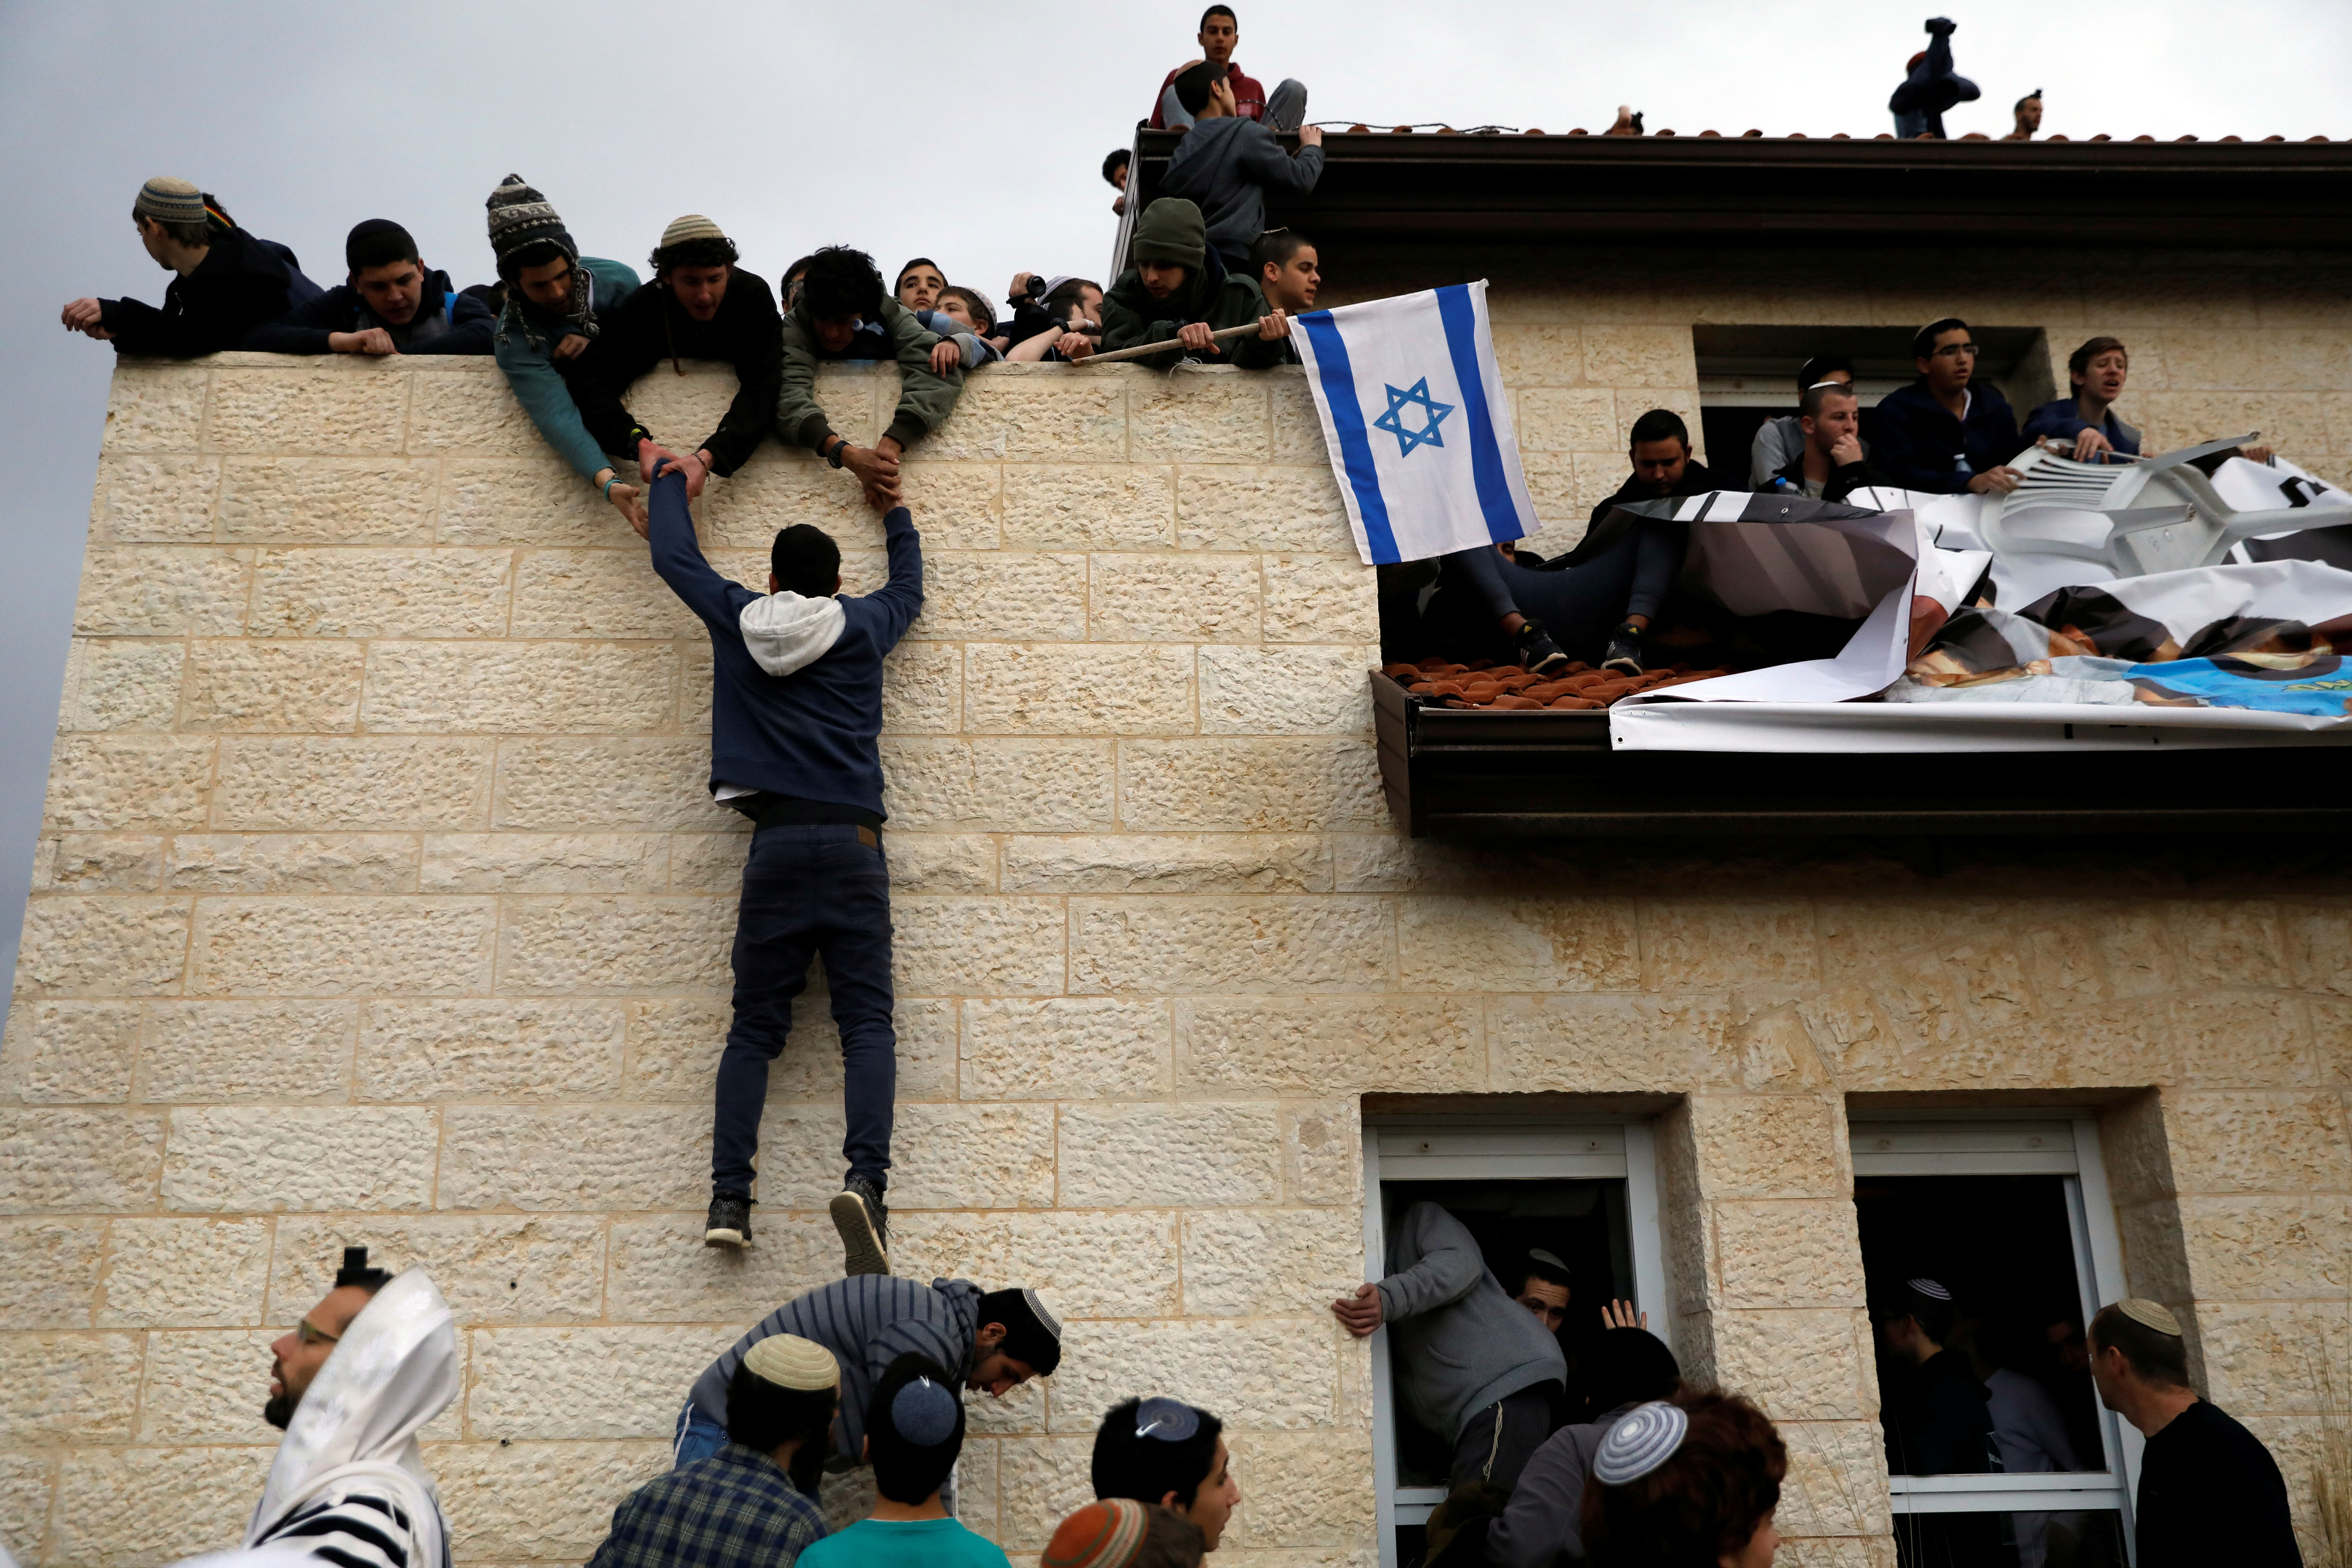 A pro-settlement activist climbs onto a rooftop of a house to resist evacuation of some houses in the settlement of Ofra in the occupied West Bank, during an operation by Israeli forces to evict the houses. REUTERS/Ronen Zvulun